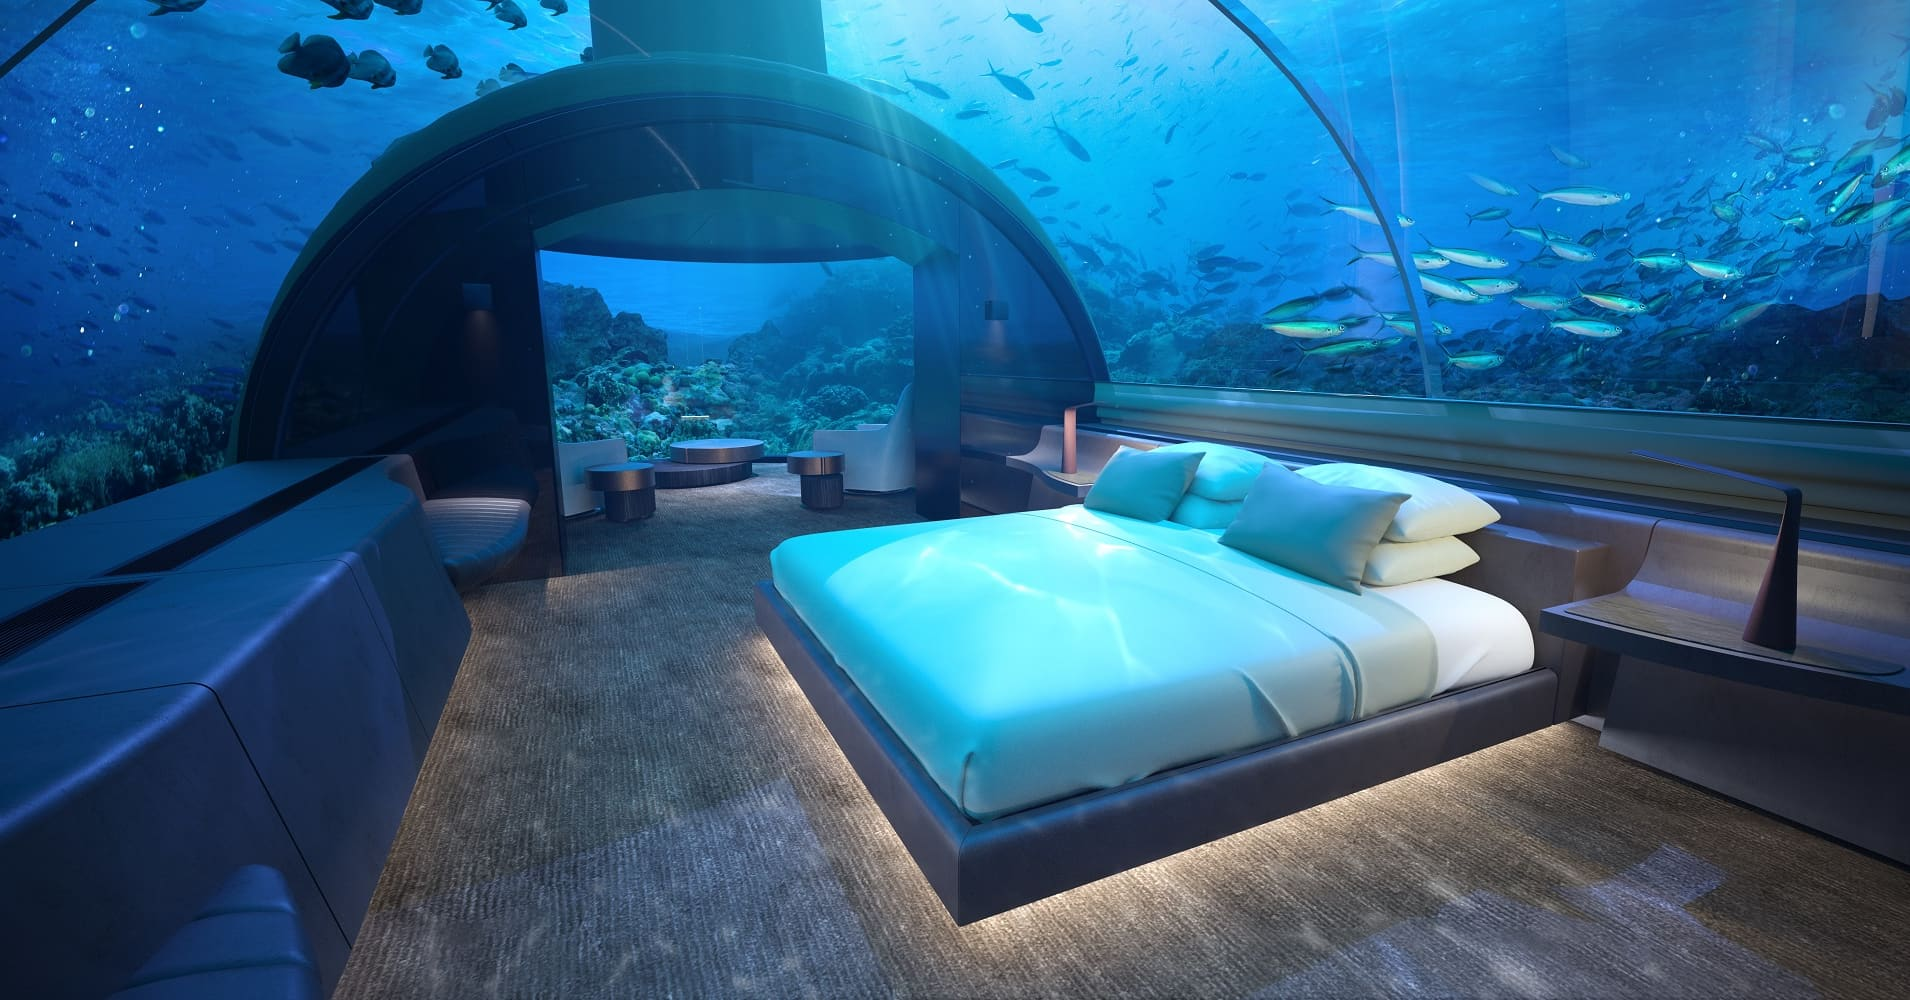 Photos Worlds First Glass Underwater Hotel Suite At